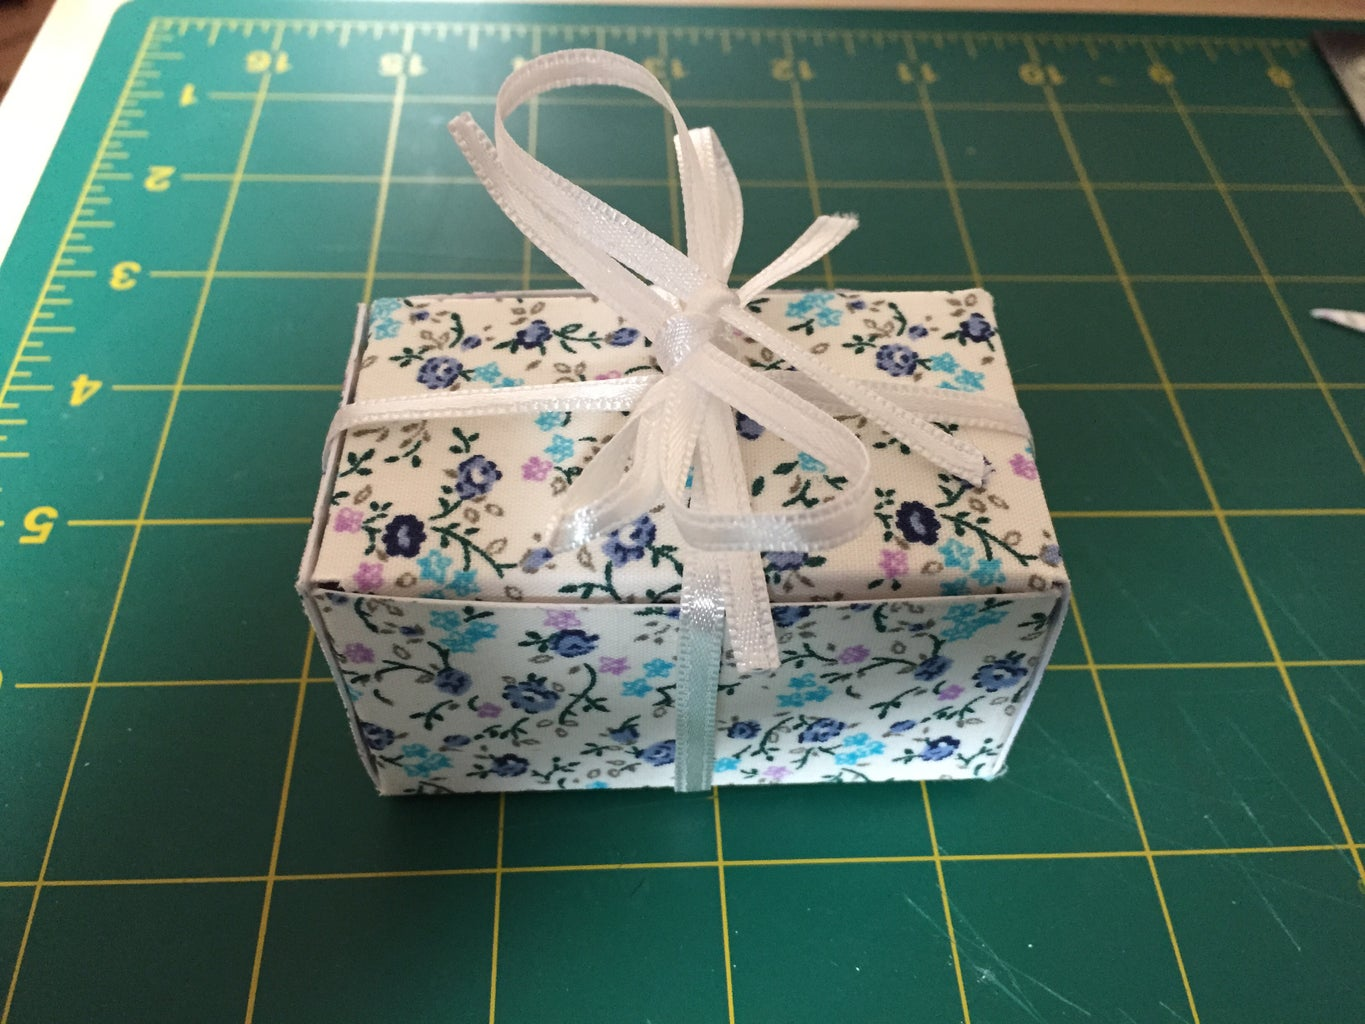 The Finished Box